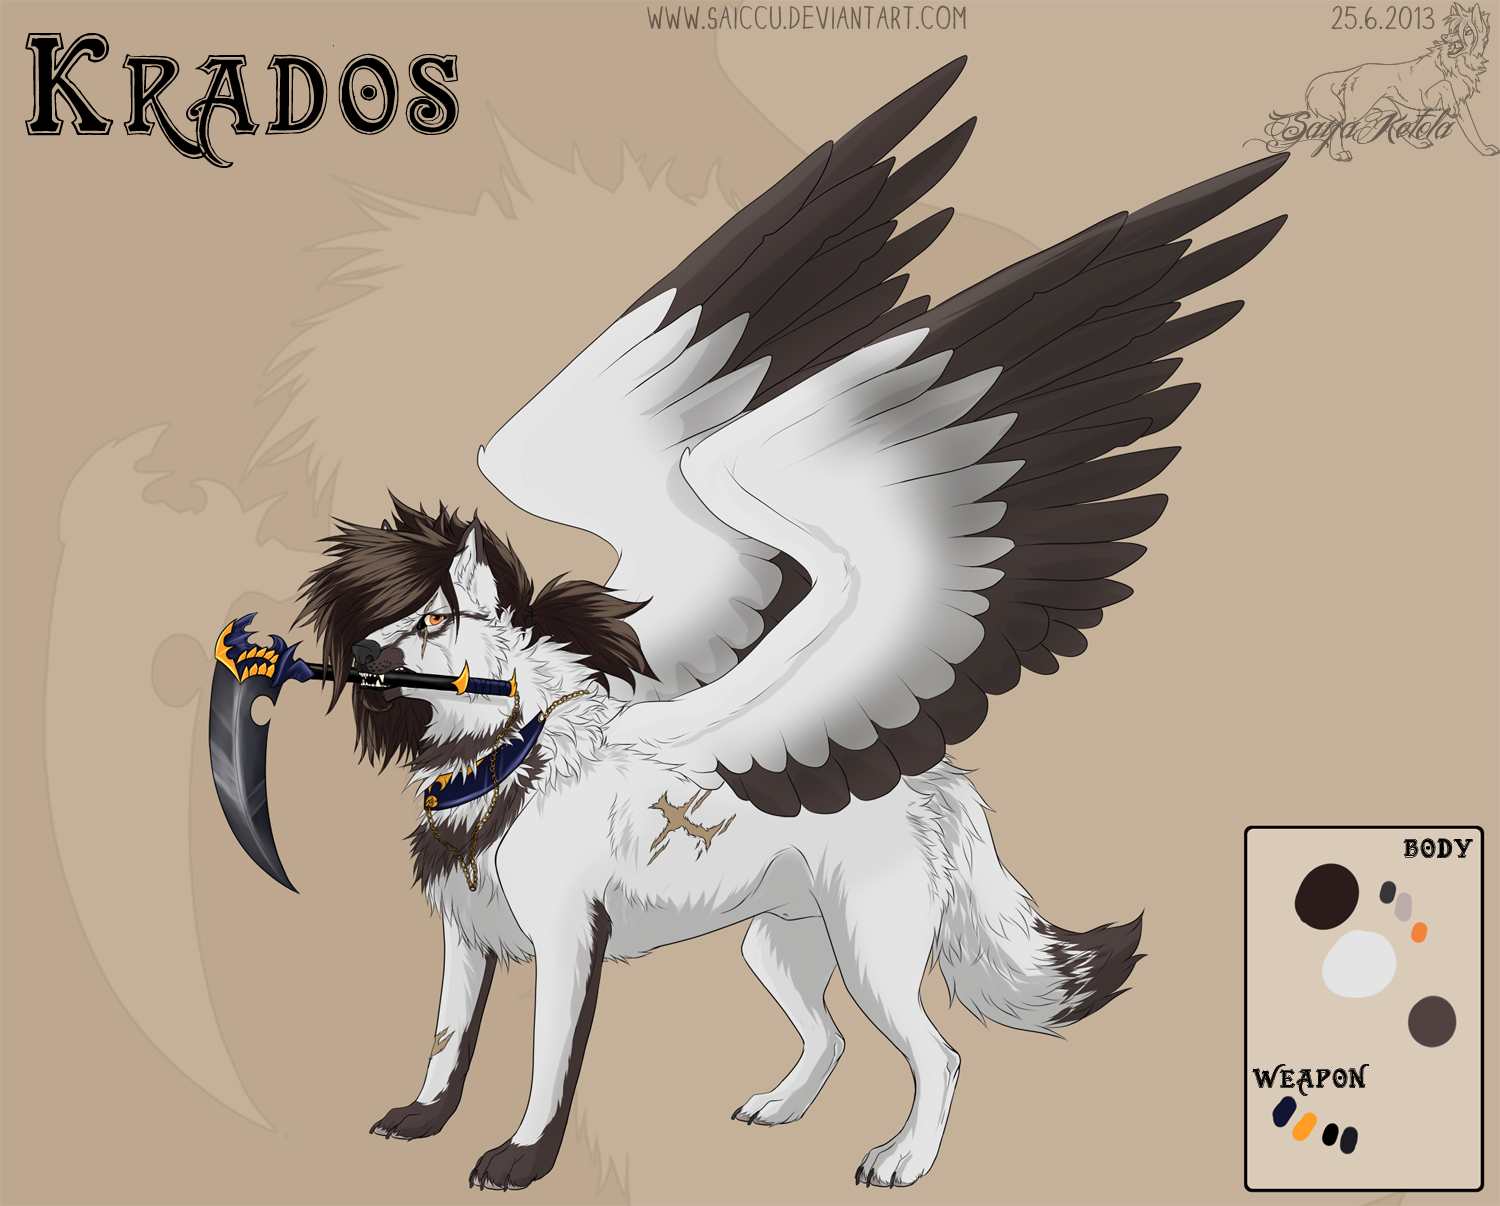 Krados .:Reference sheet:. by Saiccu